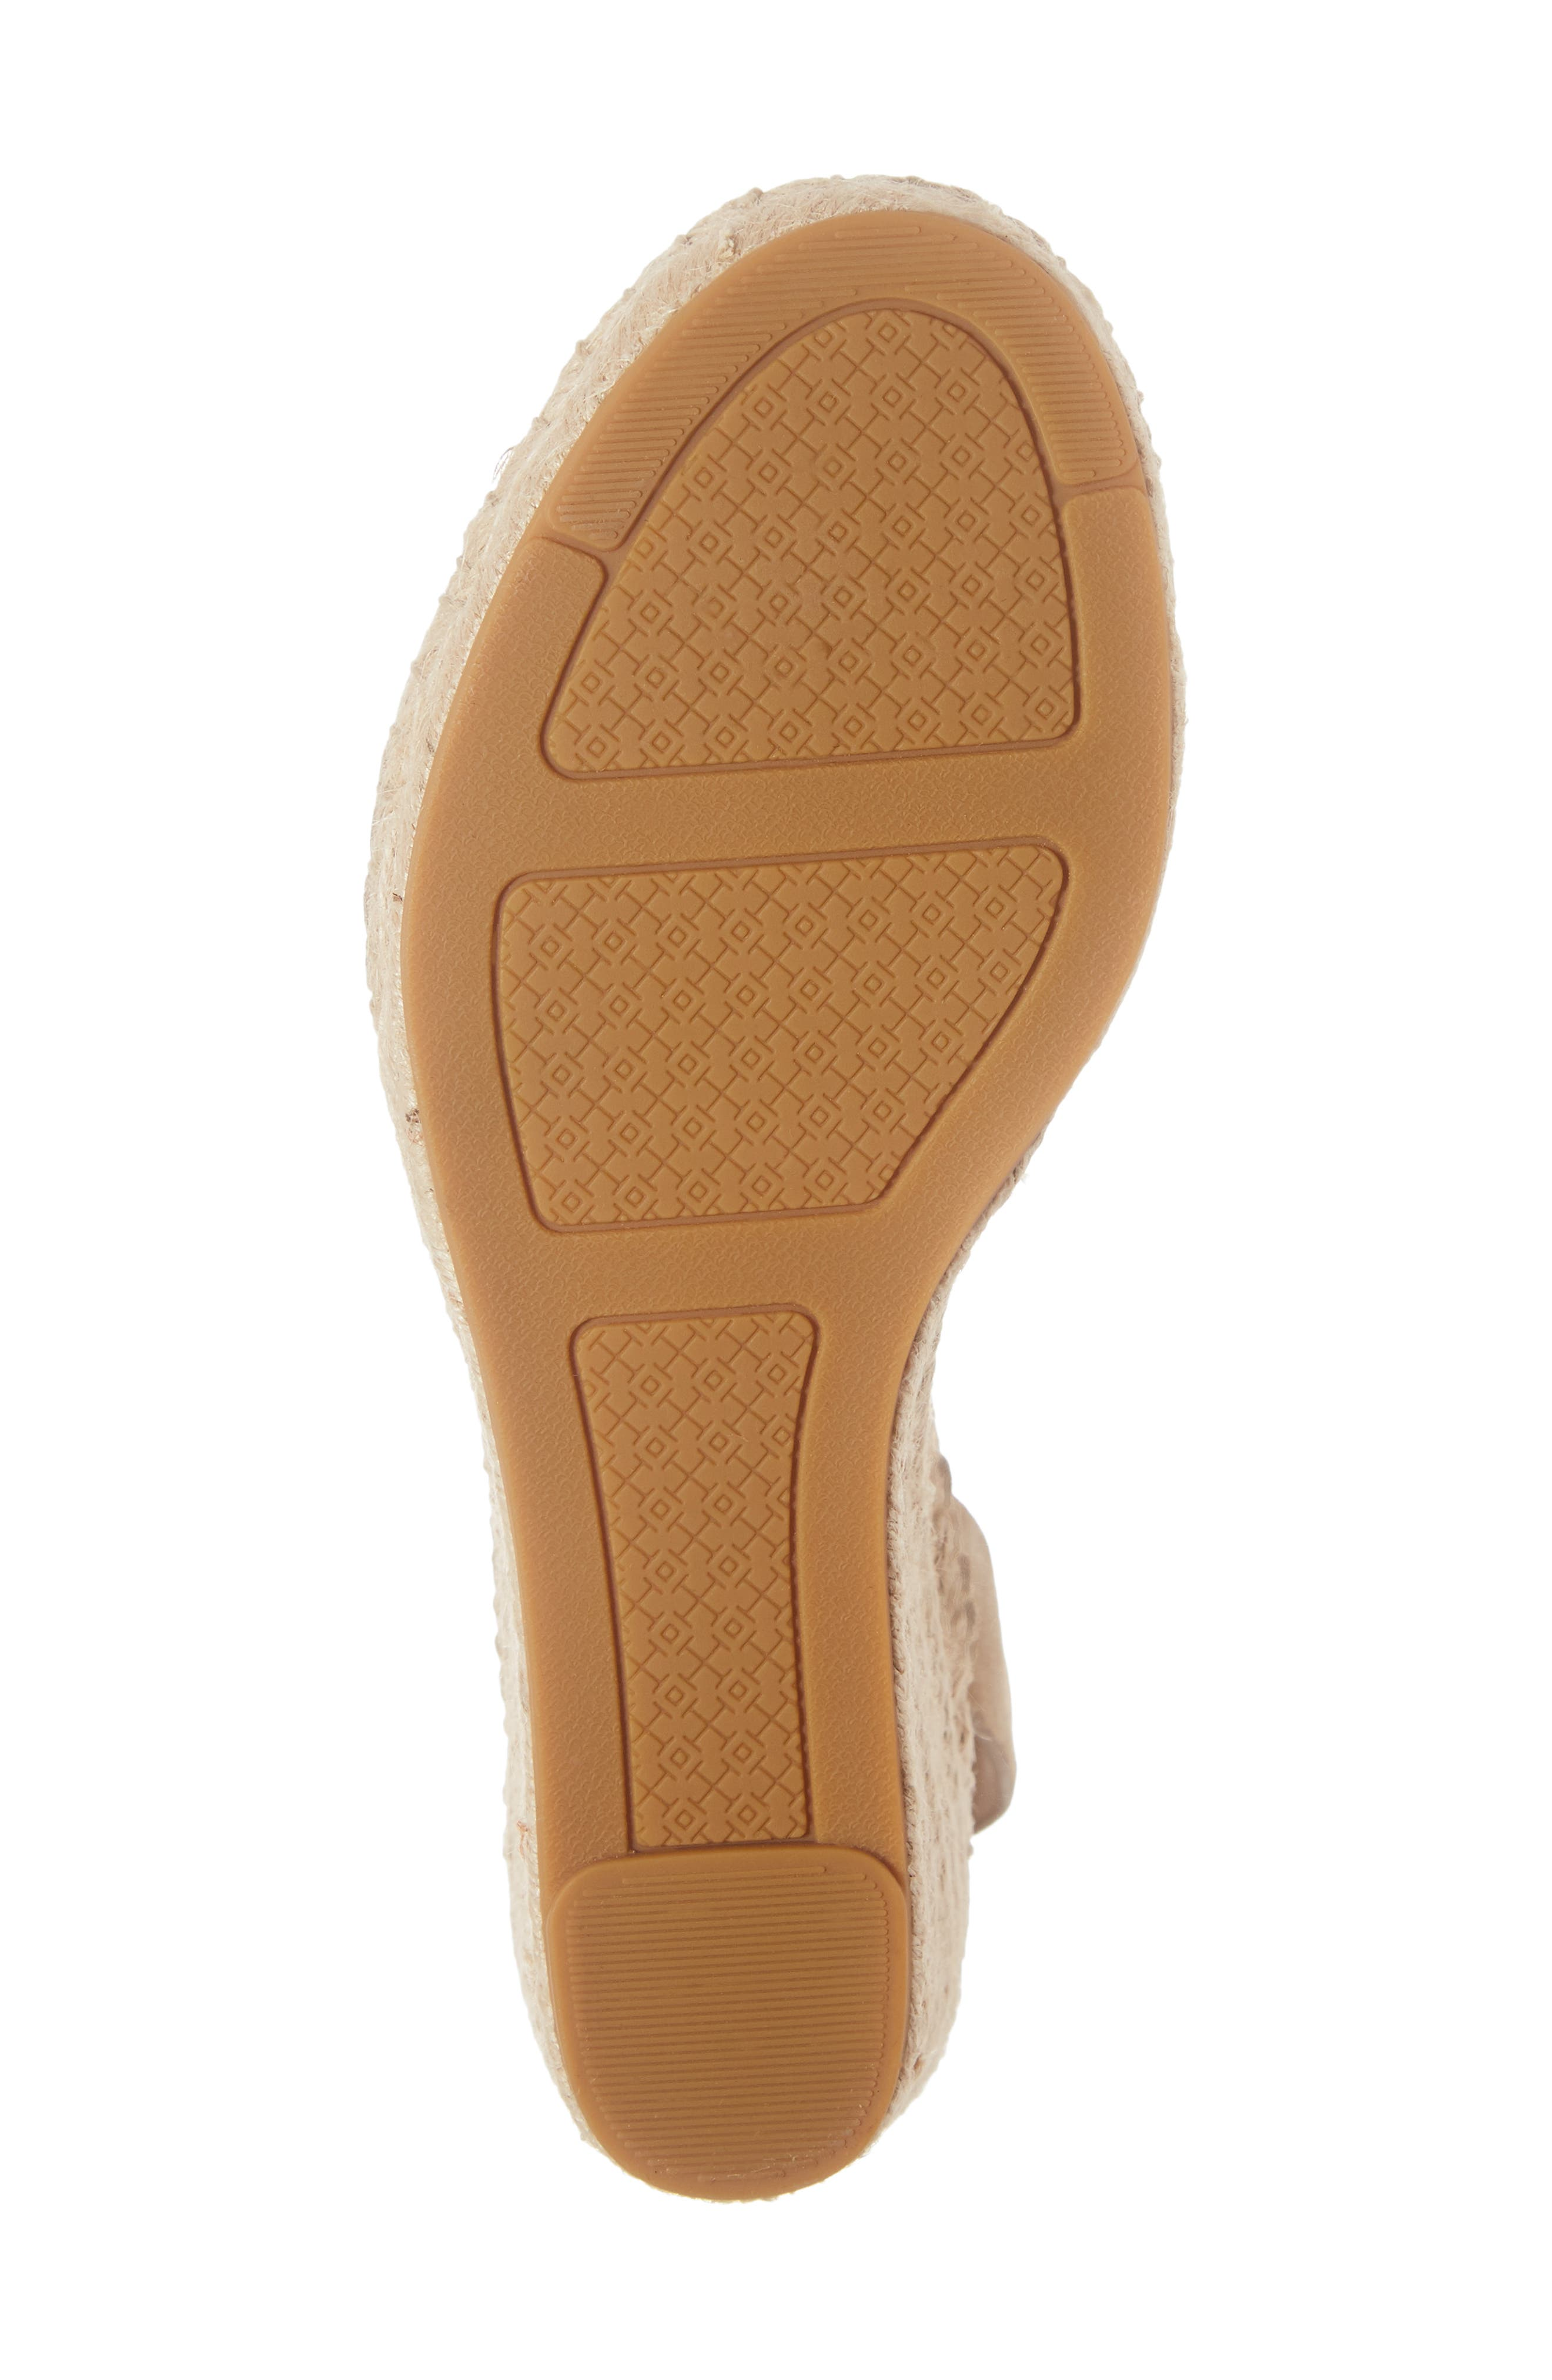 Bima 2 Espadrille,                             Alternate thumbnail 6, color,                             PERFECT SAND